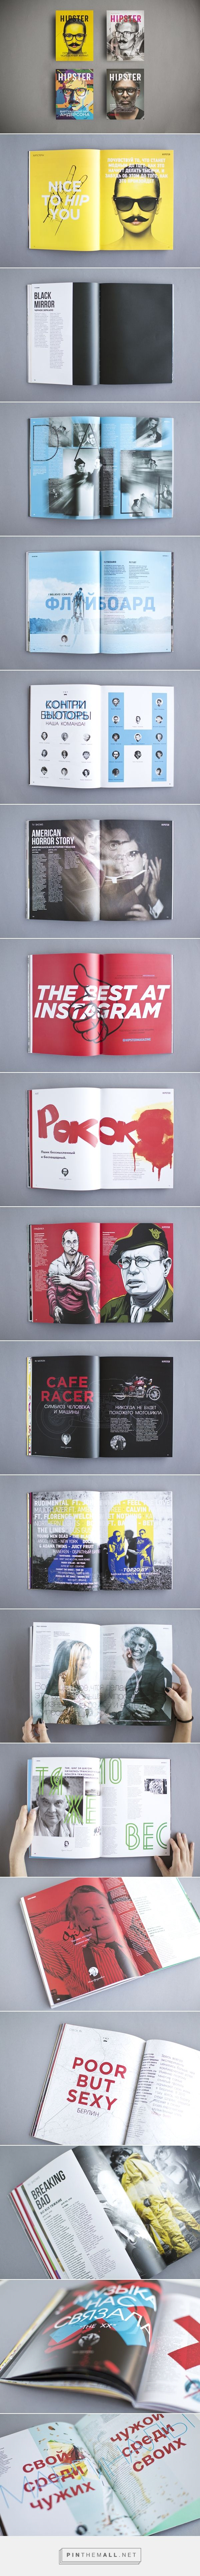 Hipster Magazine 1 / 2 / 3 / 4 issues. on Editorial Design Served - created via http://pinthemall.net